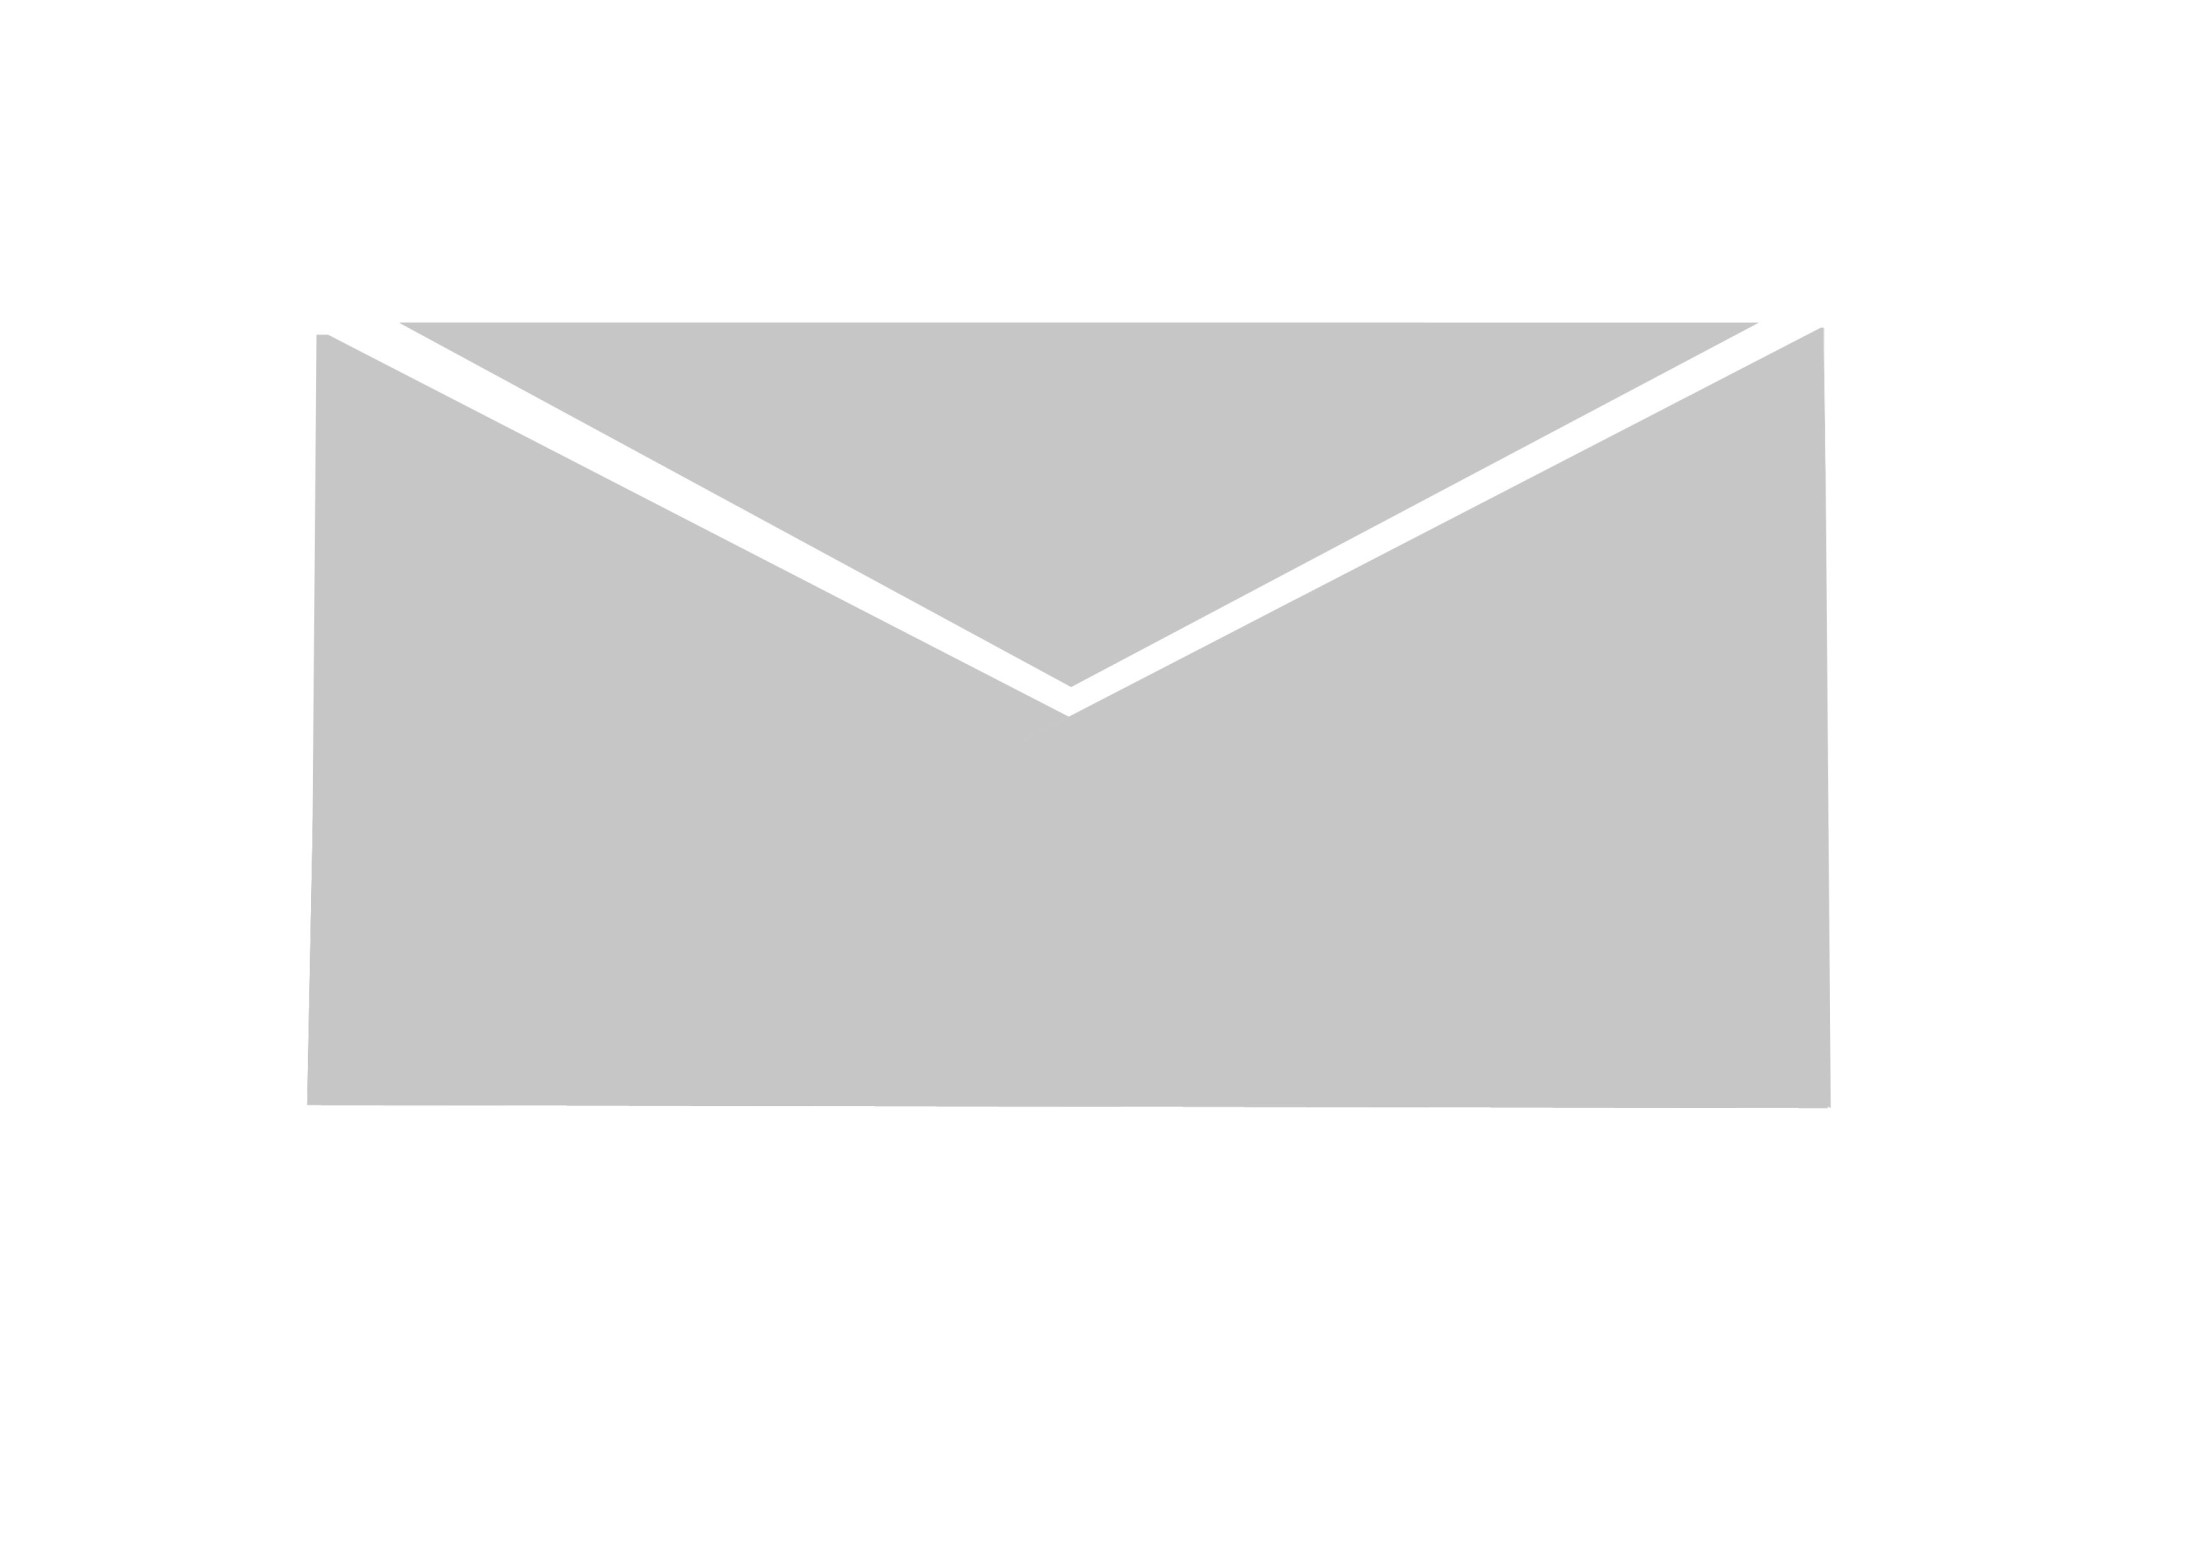 Letter as a featured image